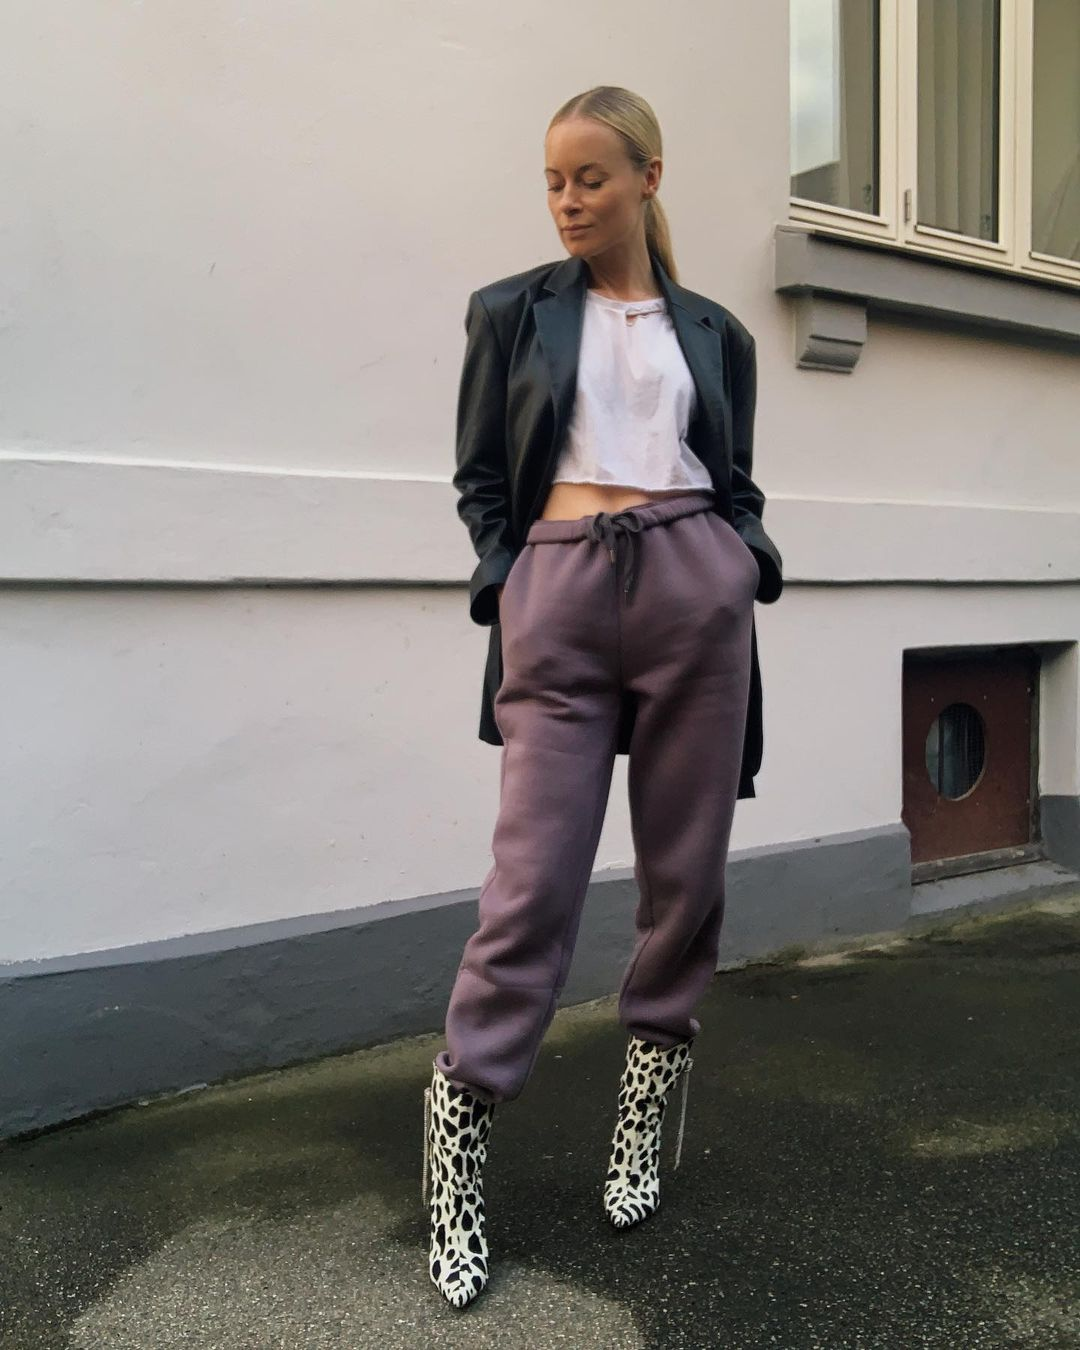 thora-valdimars-track-pants-outfit-fall-instagram